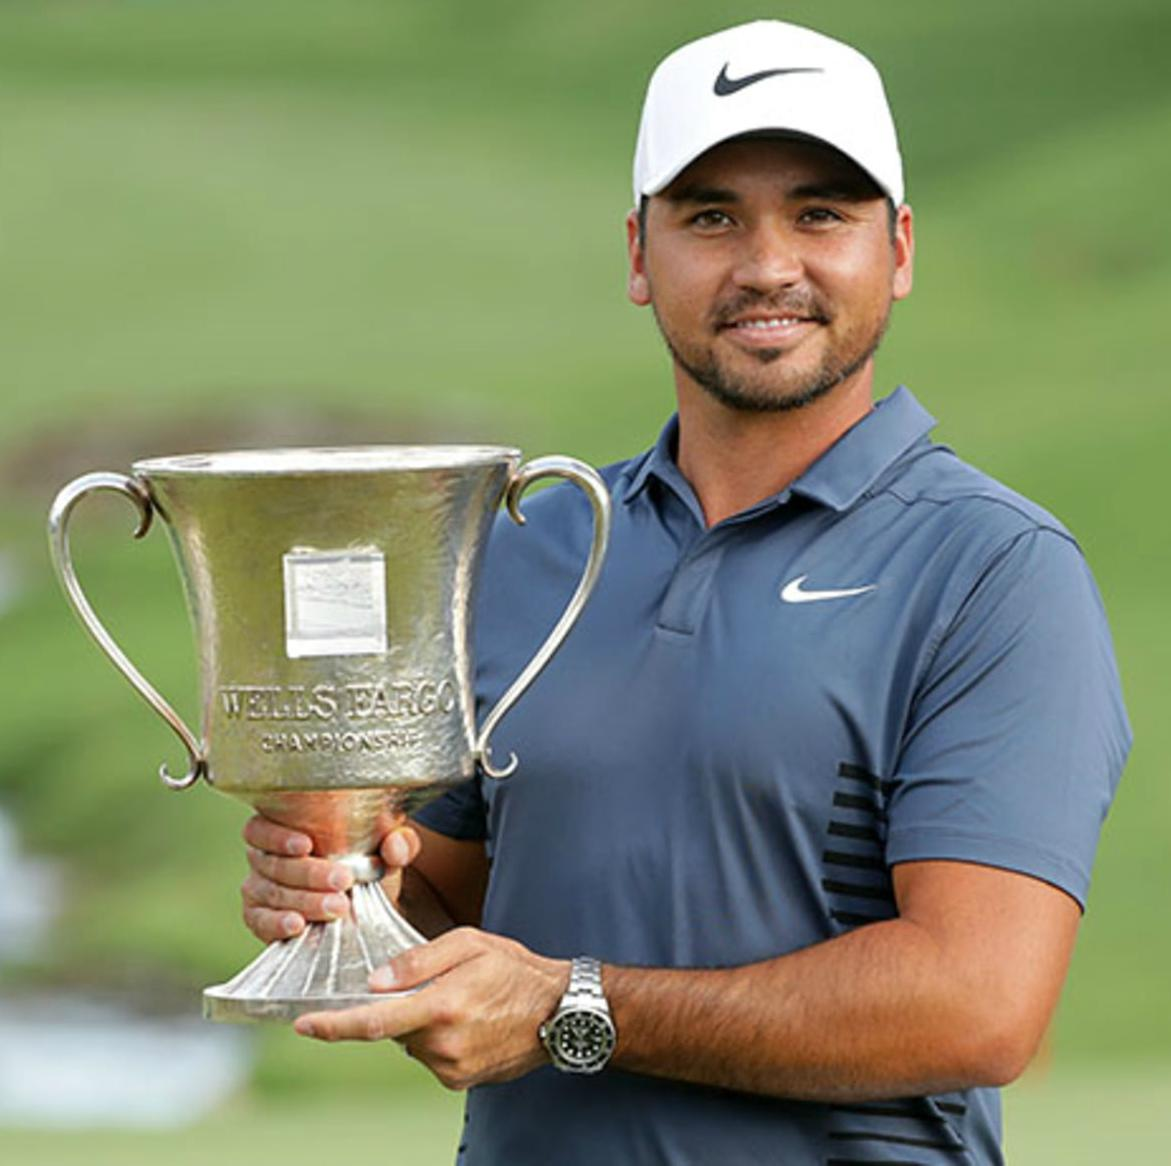 Jason Day holding trophy after his win